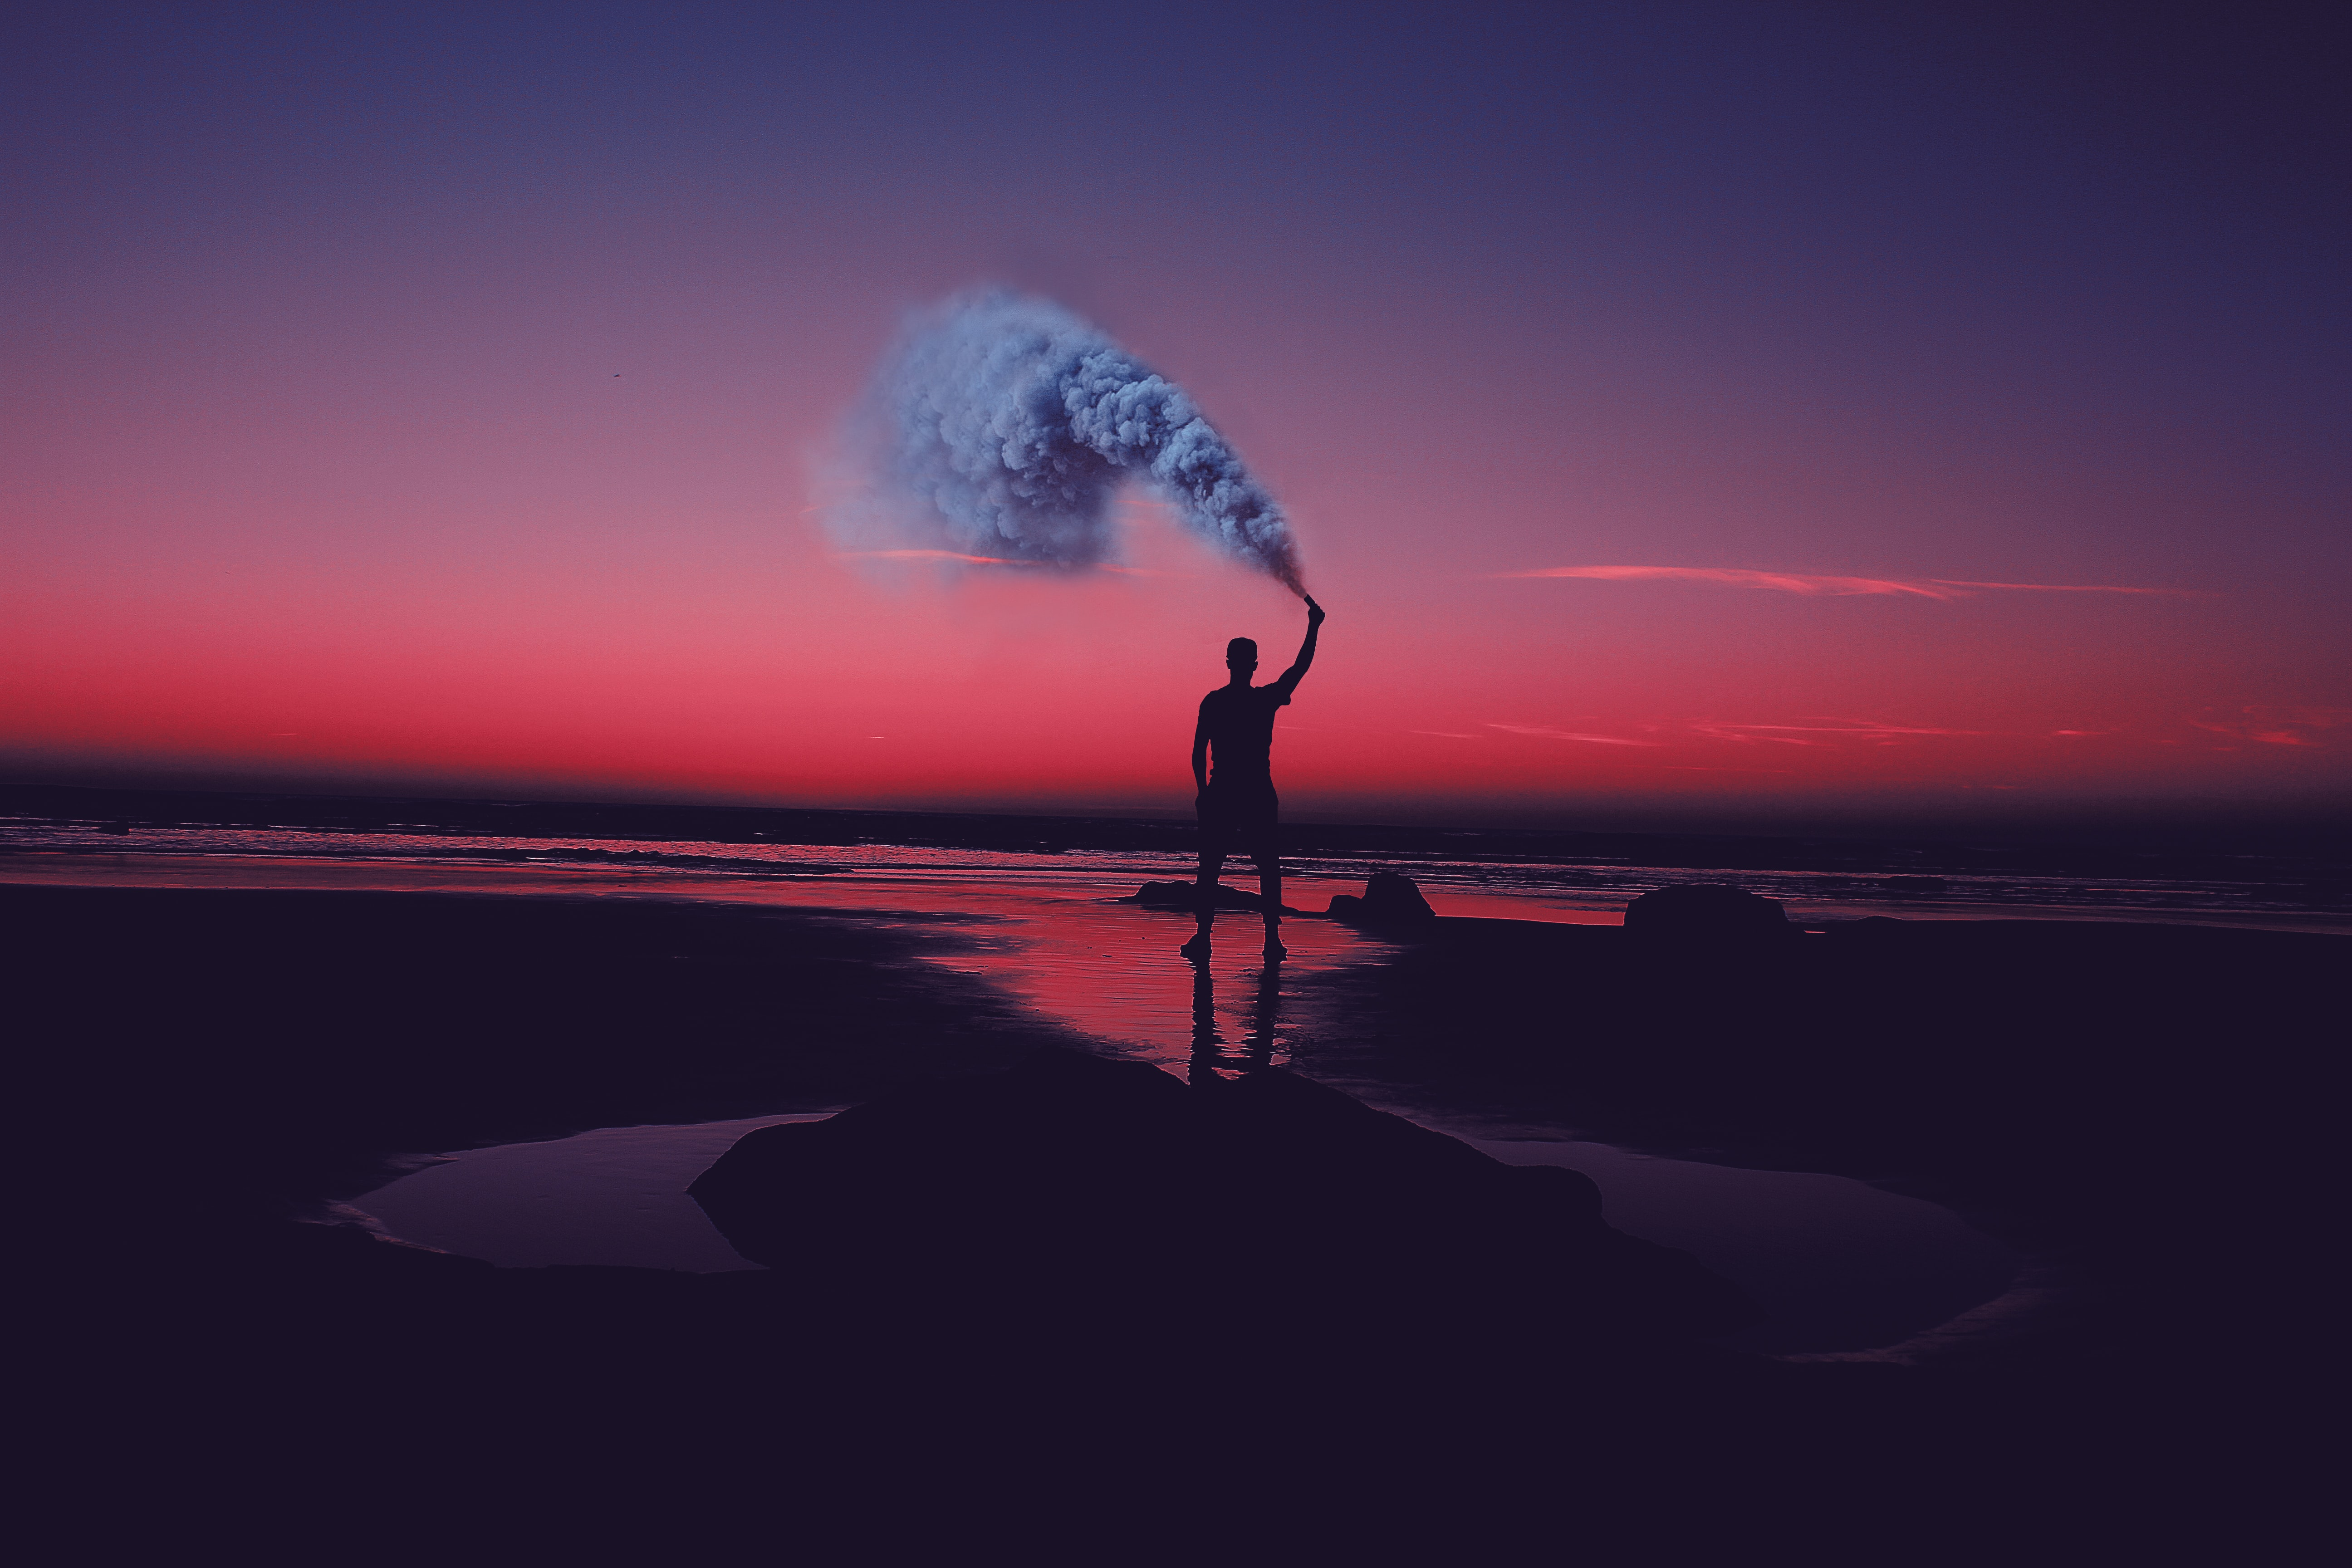 A silhouette of a man holding a smoke bomb on a deserted beach, with a pink sunset sky in the background